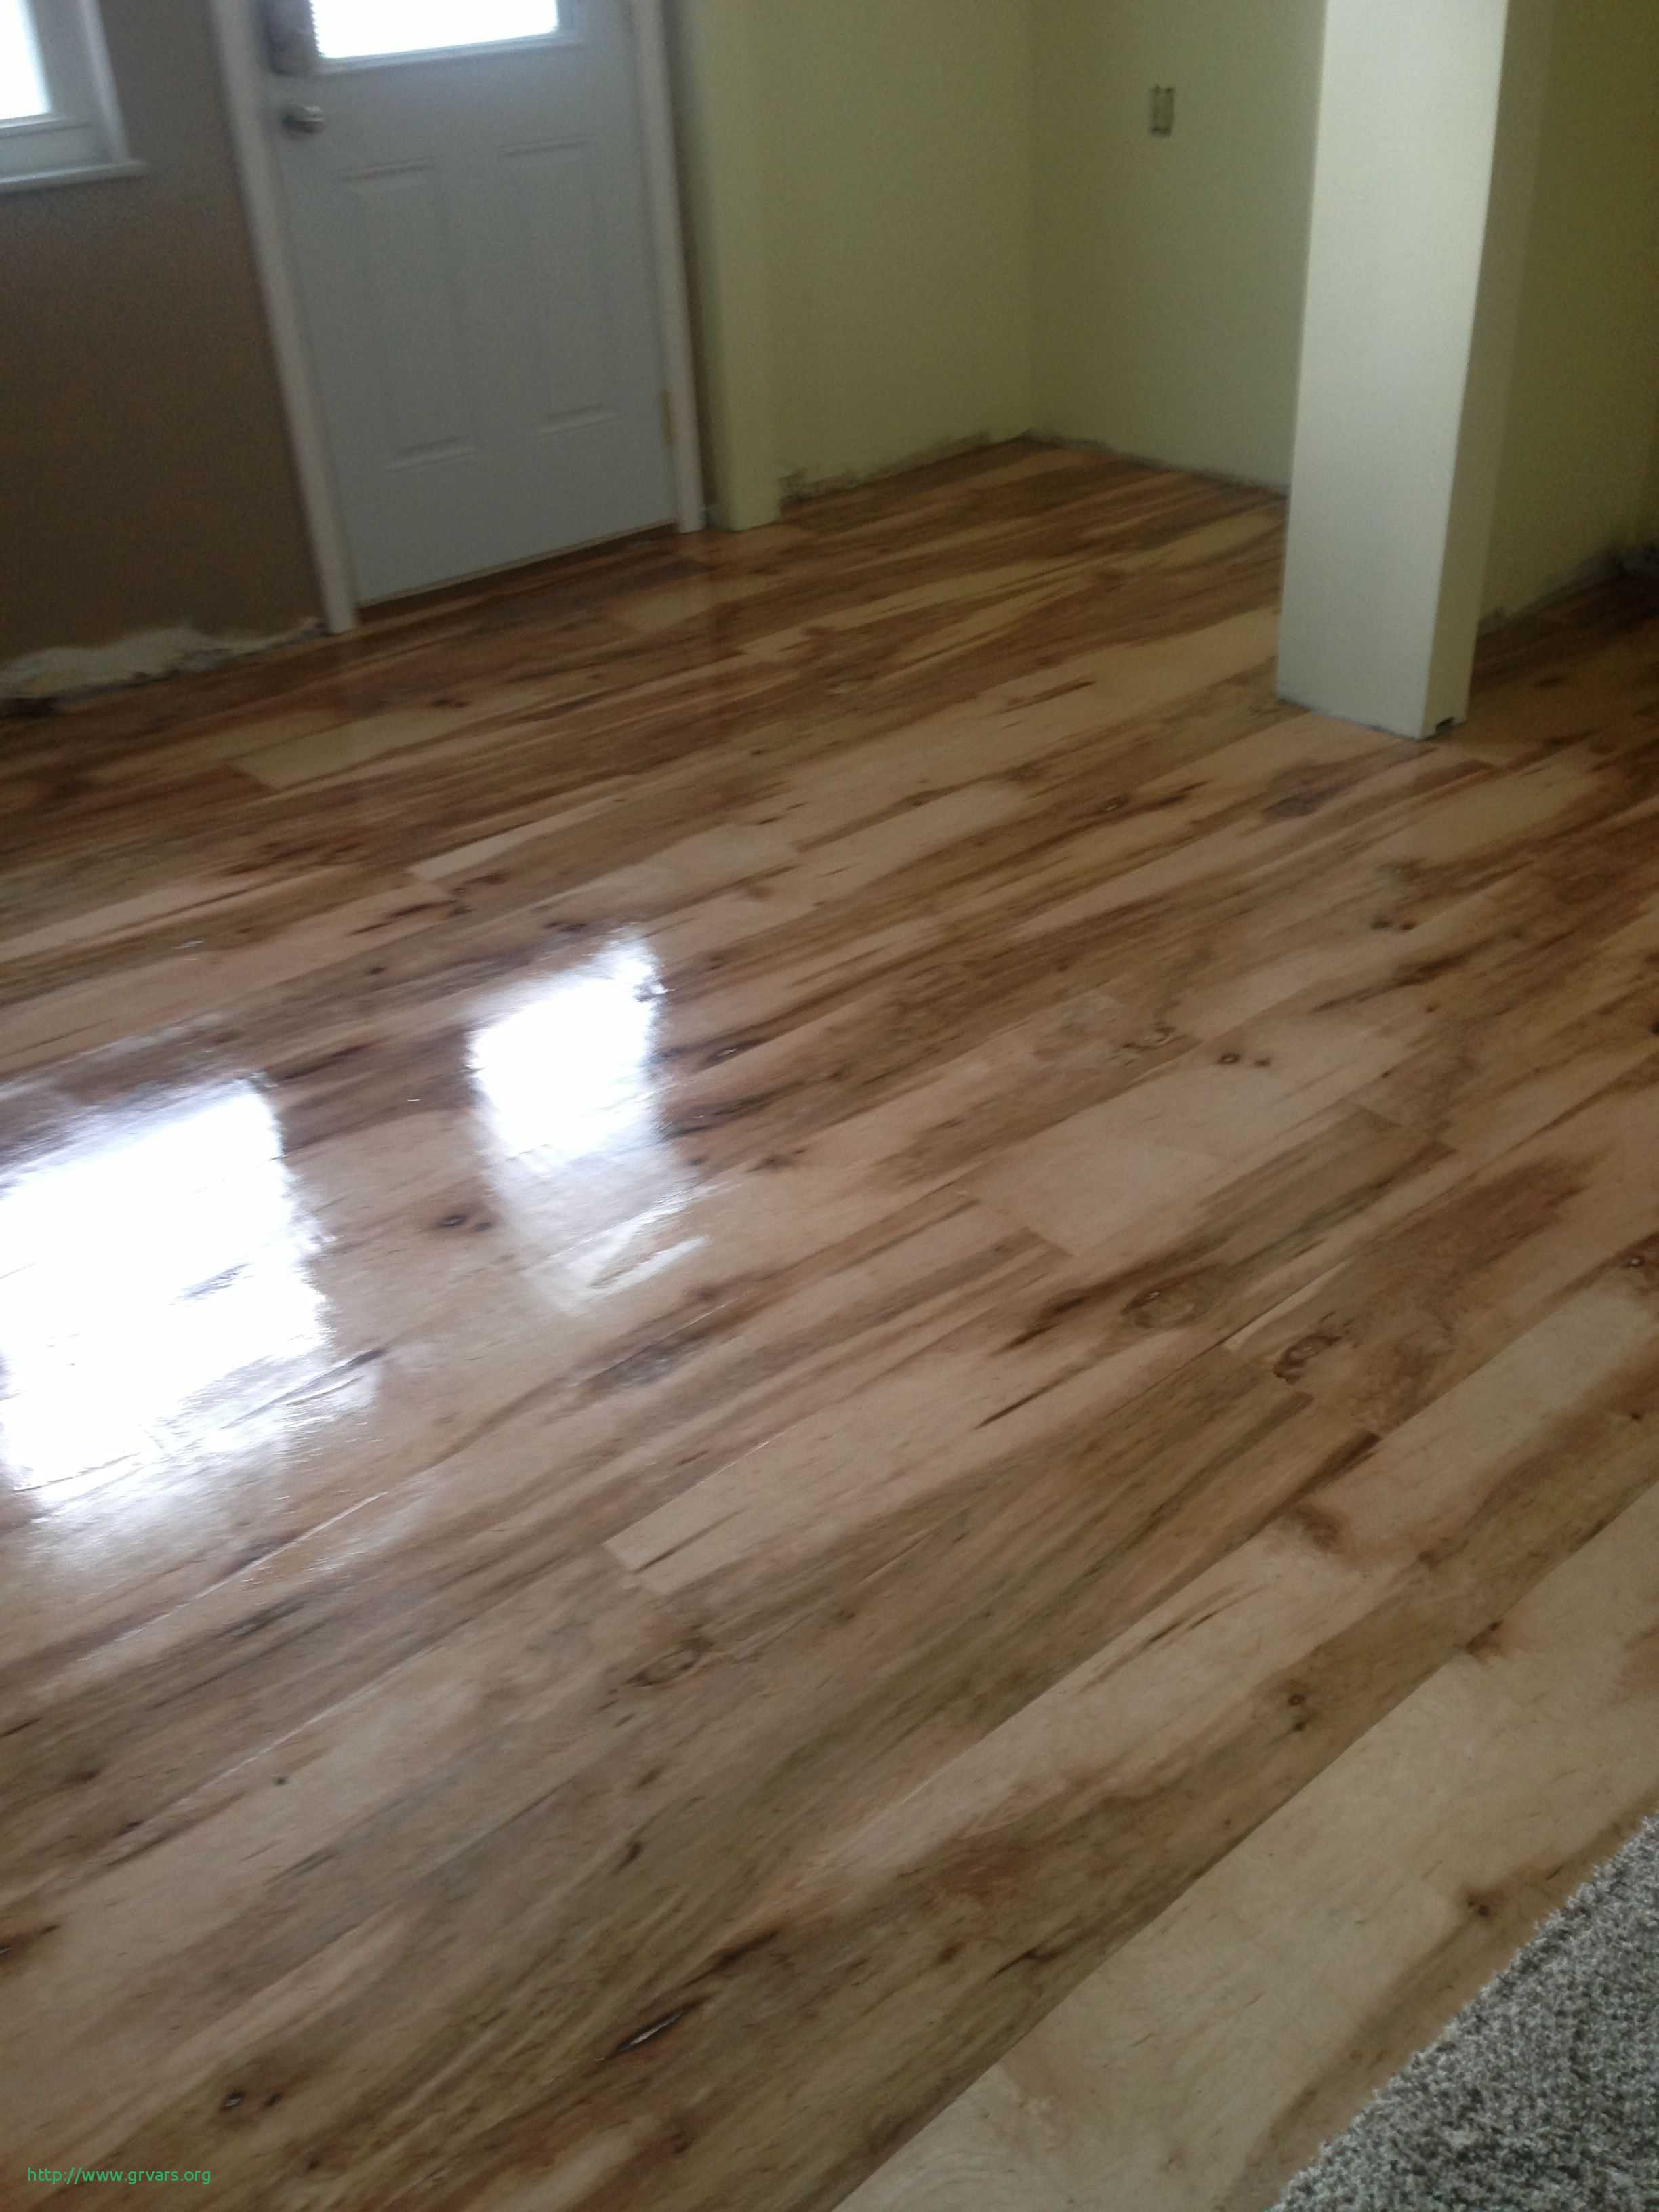 hardwood flooring unfinished prices of 21 inspirant best prices for laminate wood flooring ideas blog intended for best prices for laminate wood flooring unique engaging discount hardwood flooring 5 where to buy inspirational